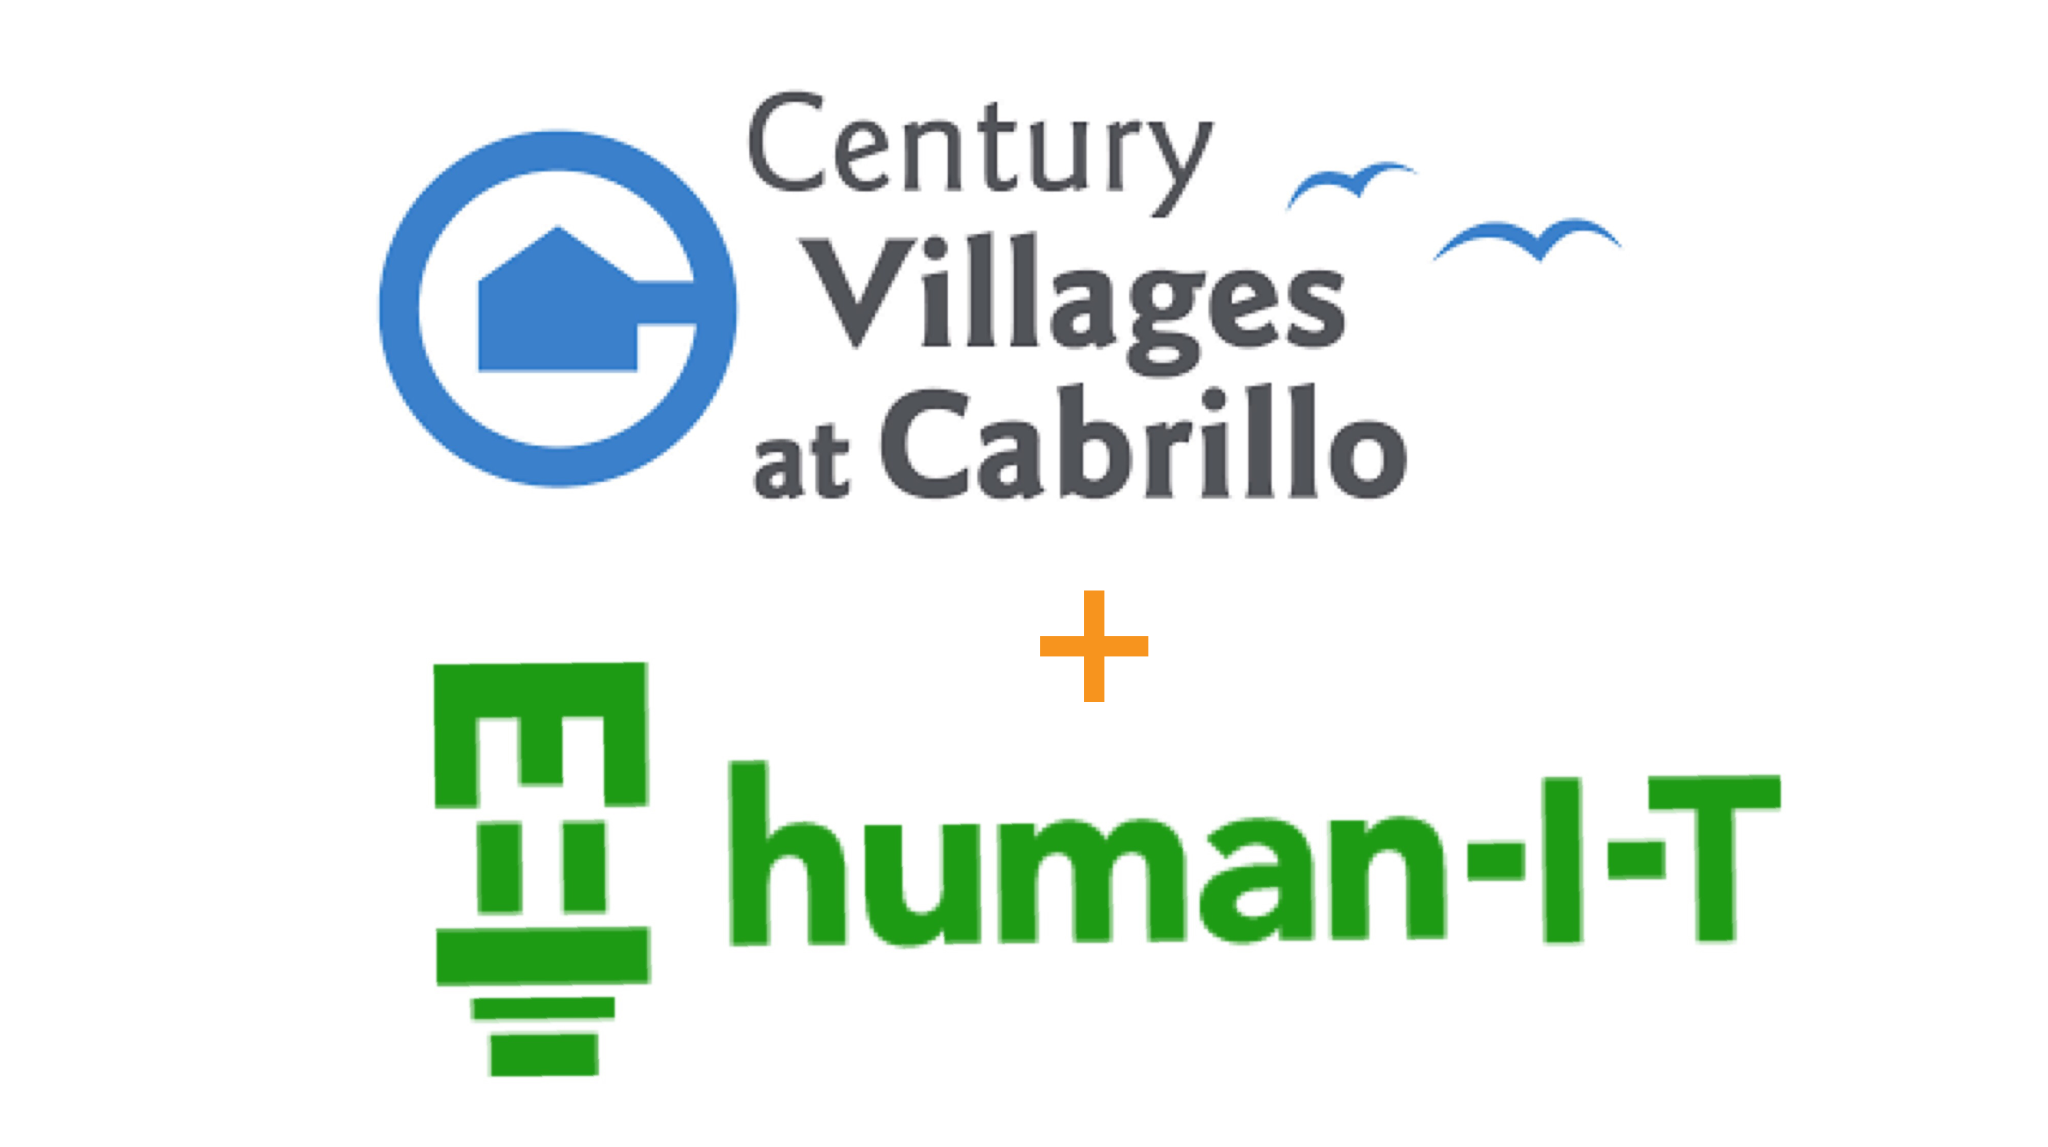 Century Villages Image